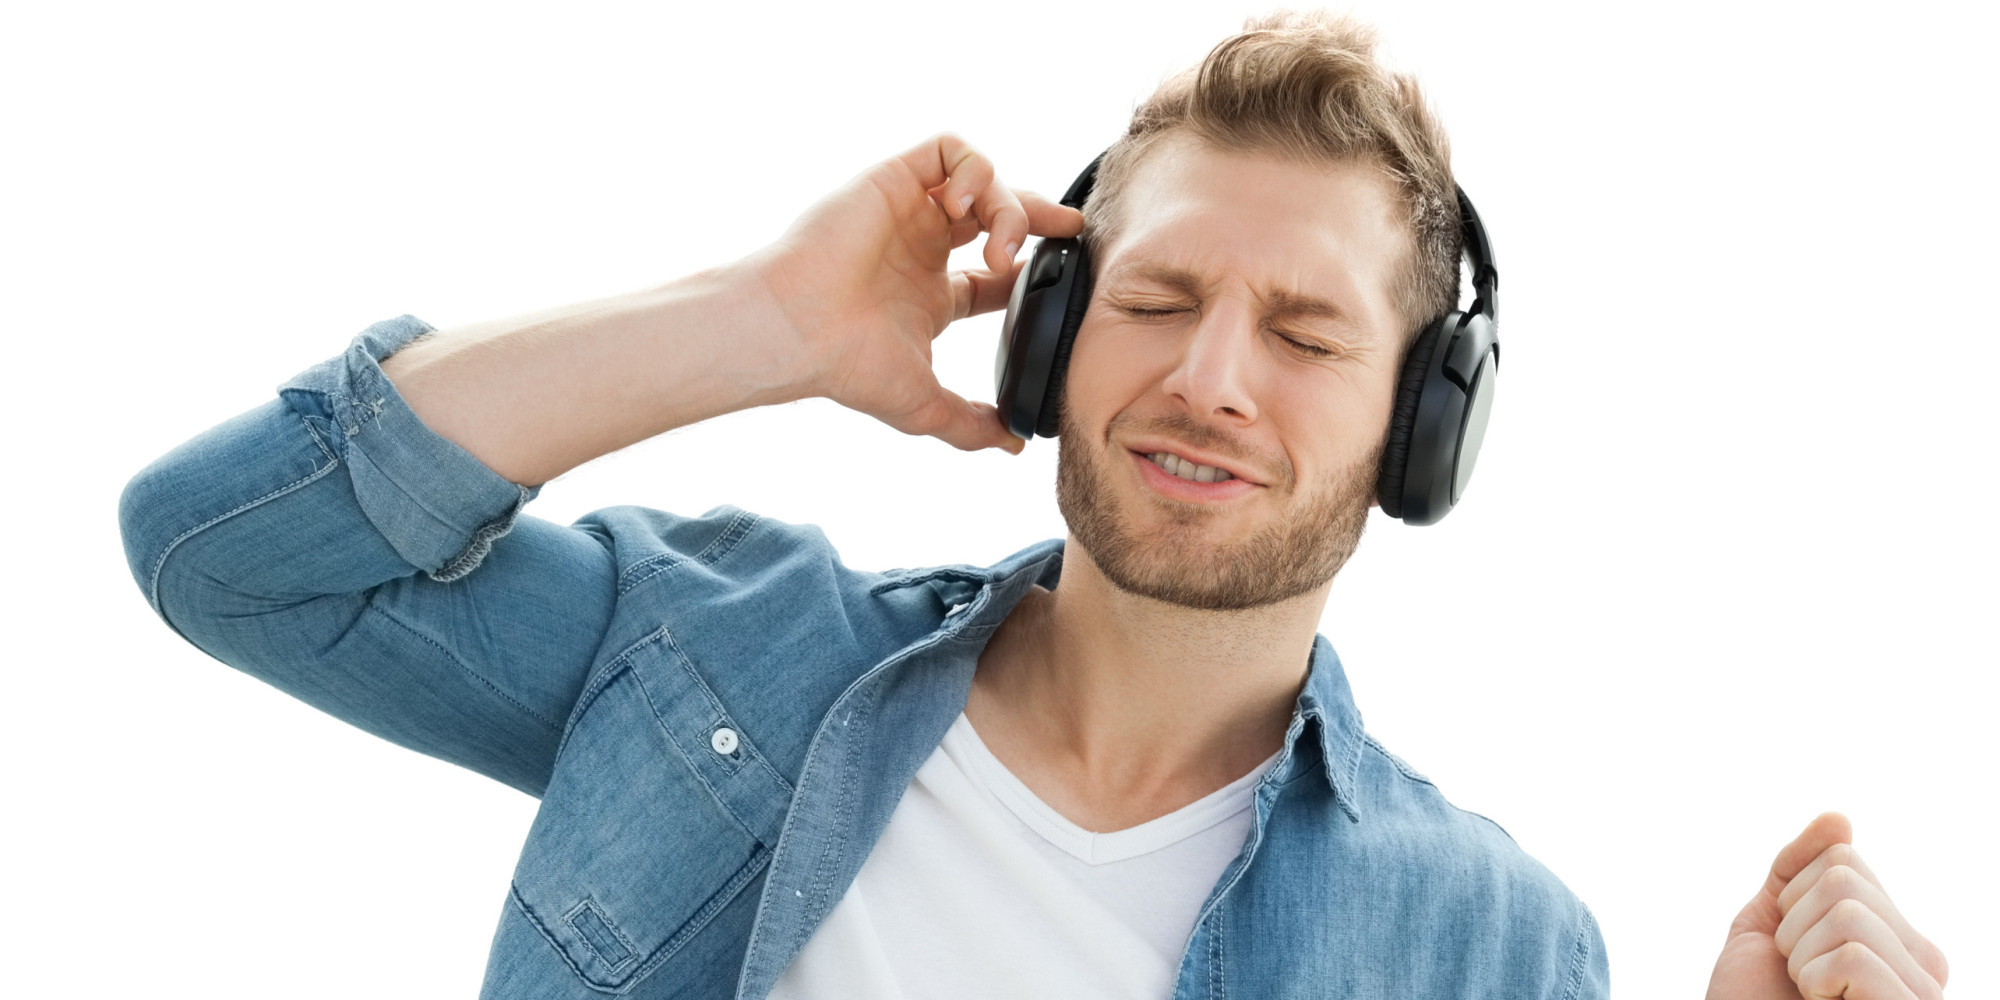 Handsome of a young man enjoying music